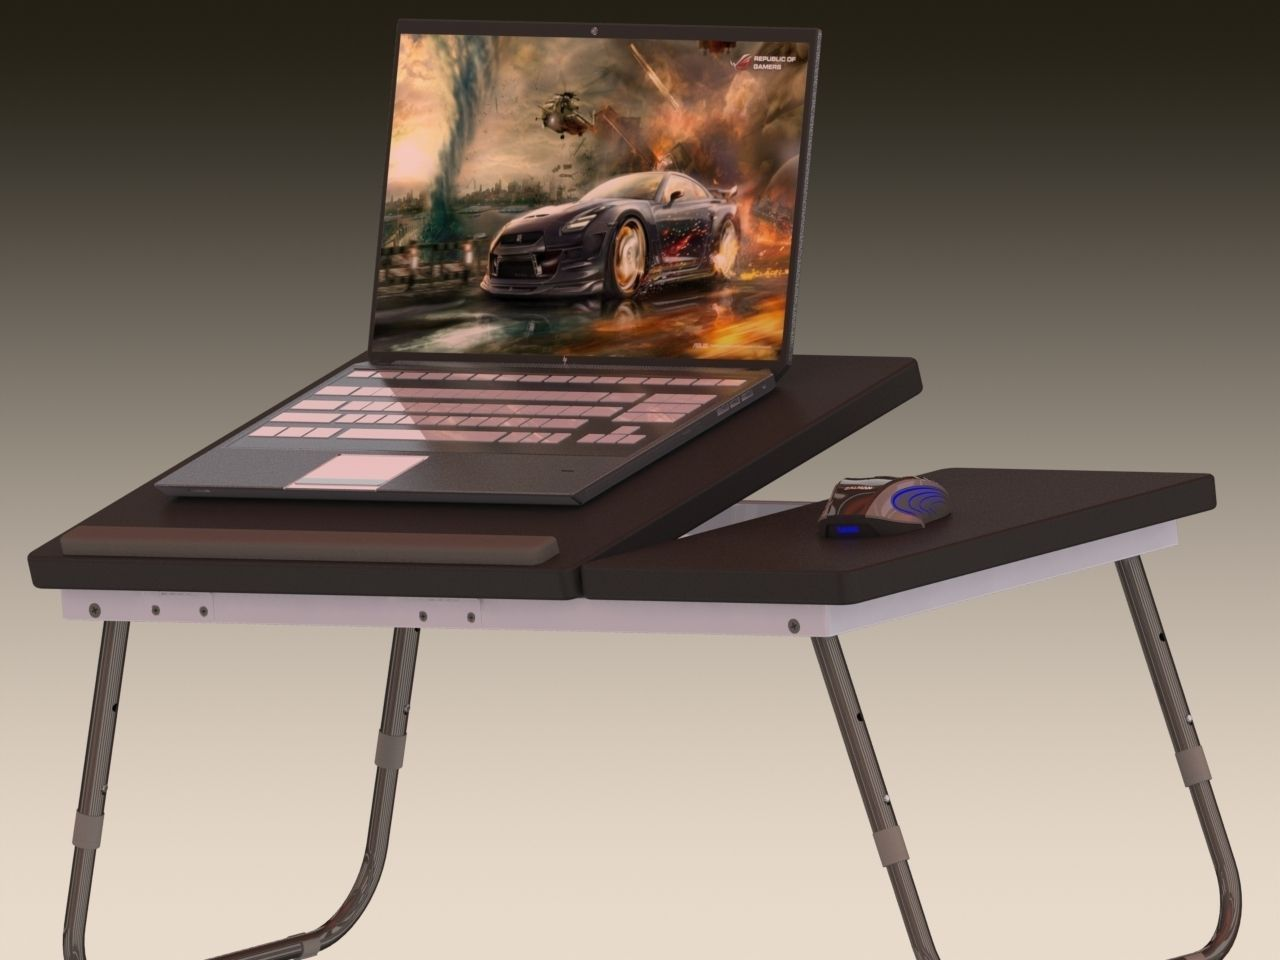 adjustable portable laptop table 3d model stl sldprt sldasm slddrw ige igs iges stp